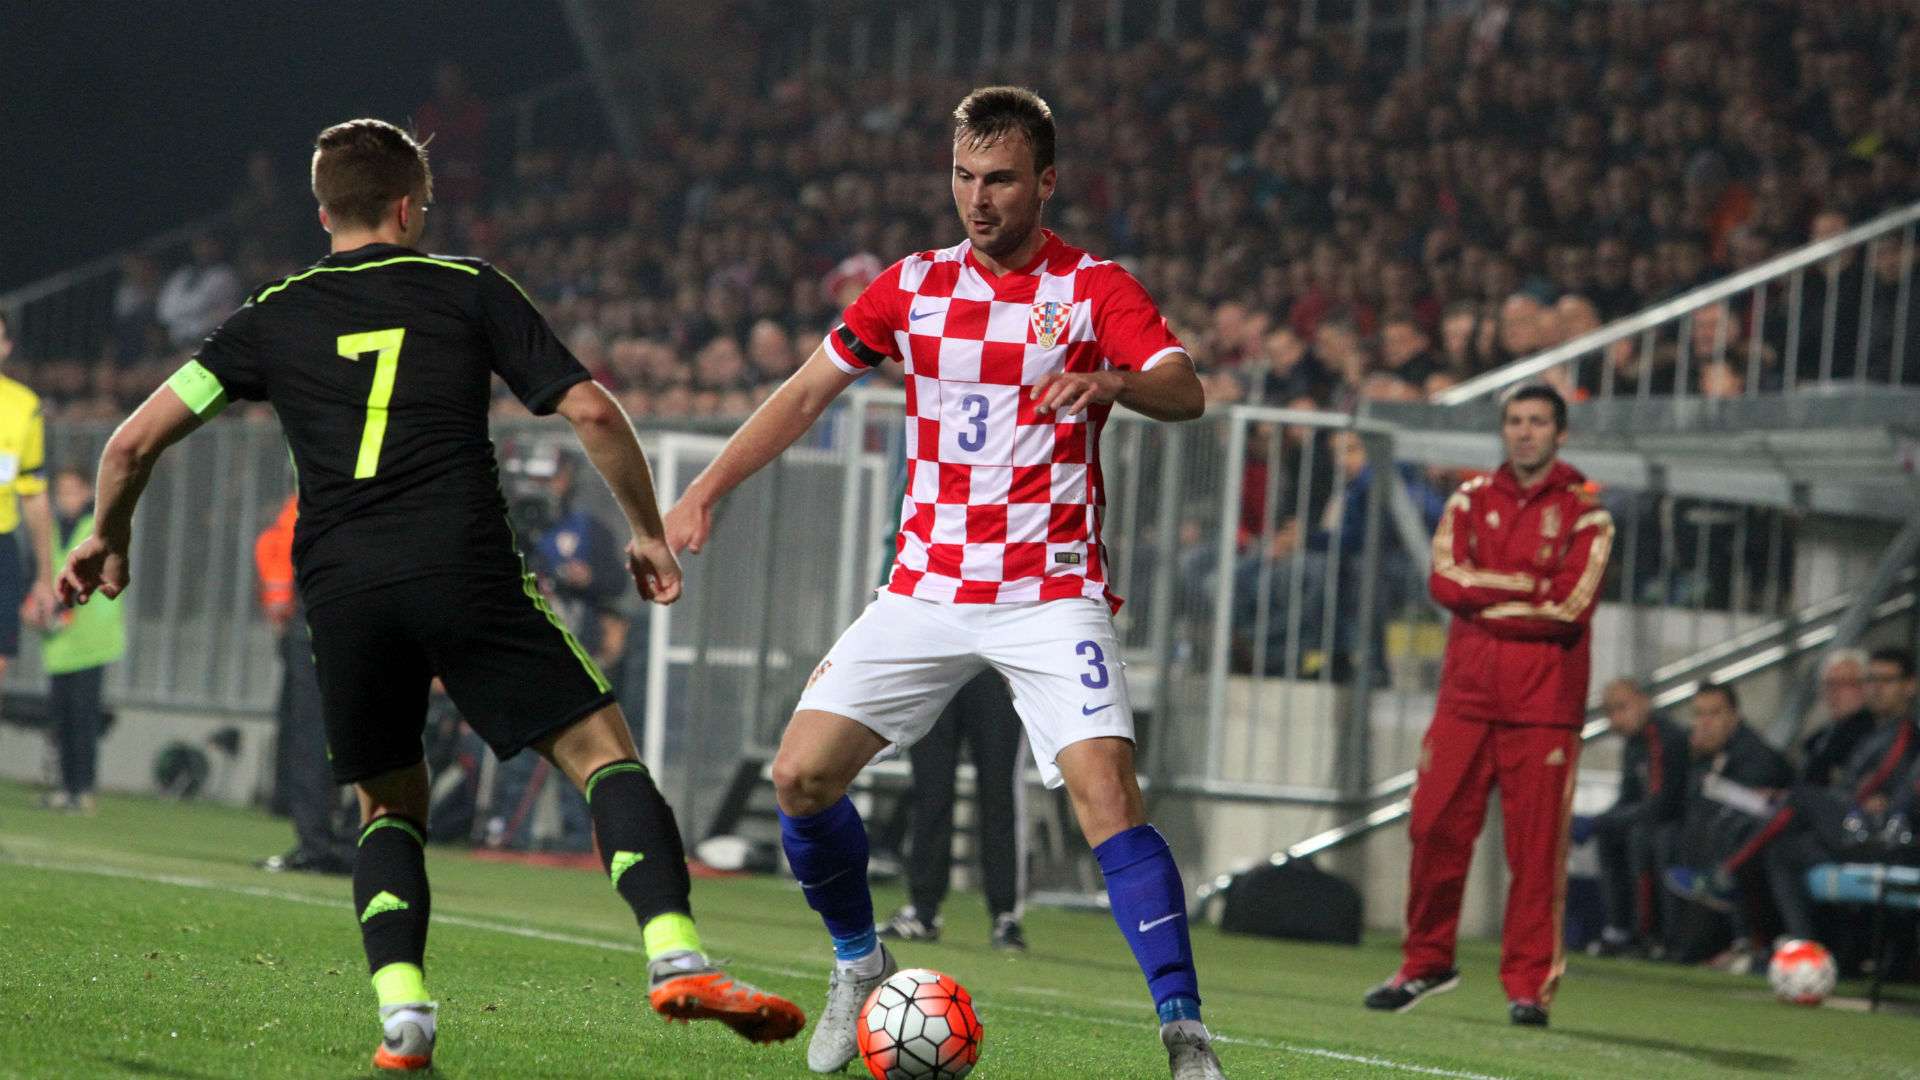 antonio milic - croatia u21 spain u21 - qualifier - 17112015